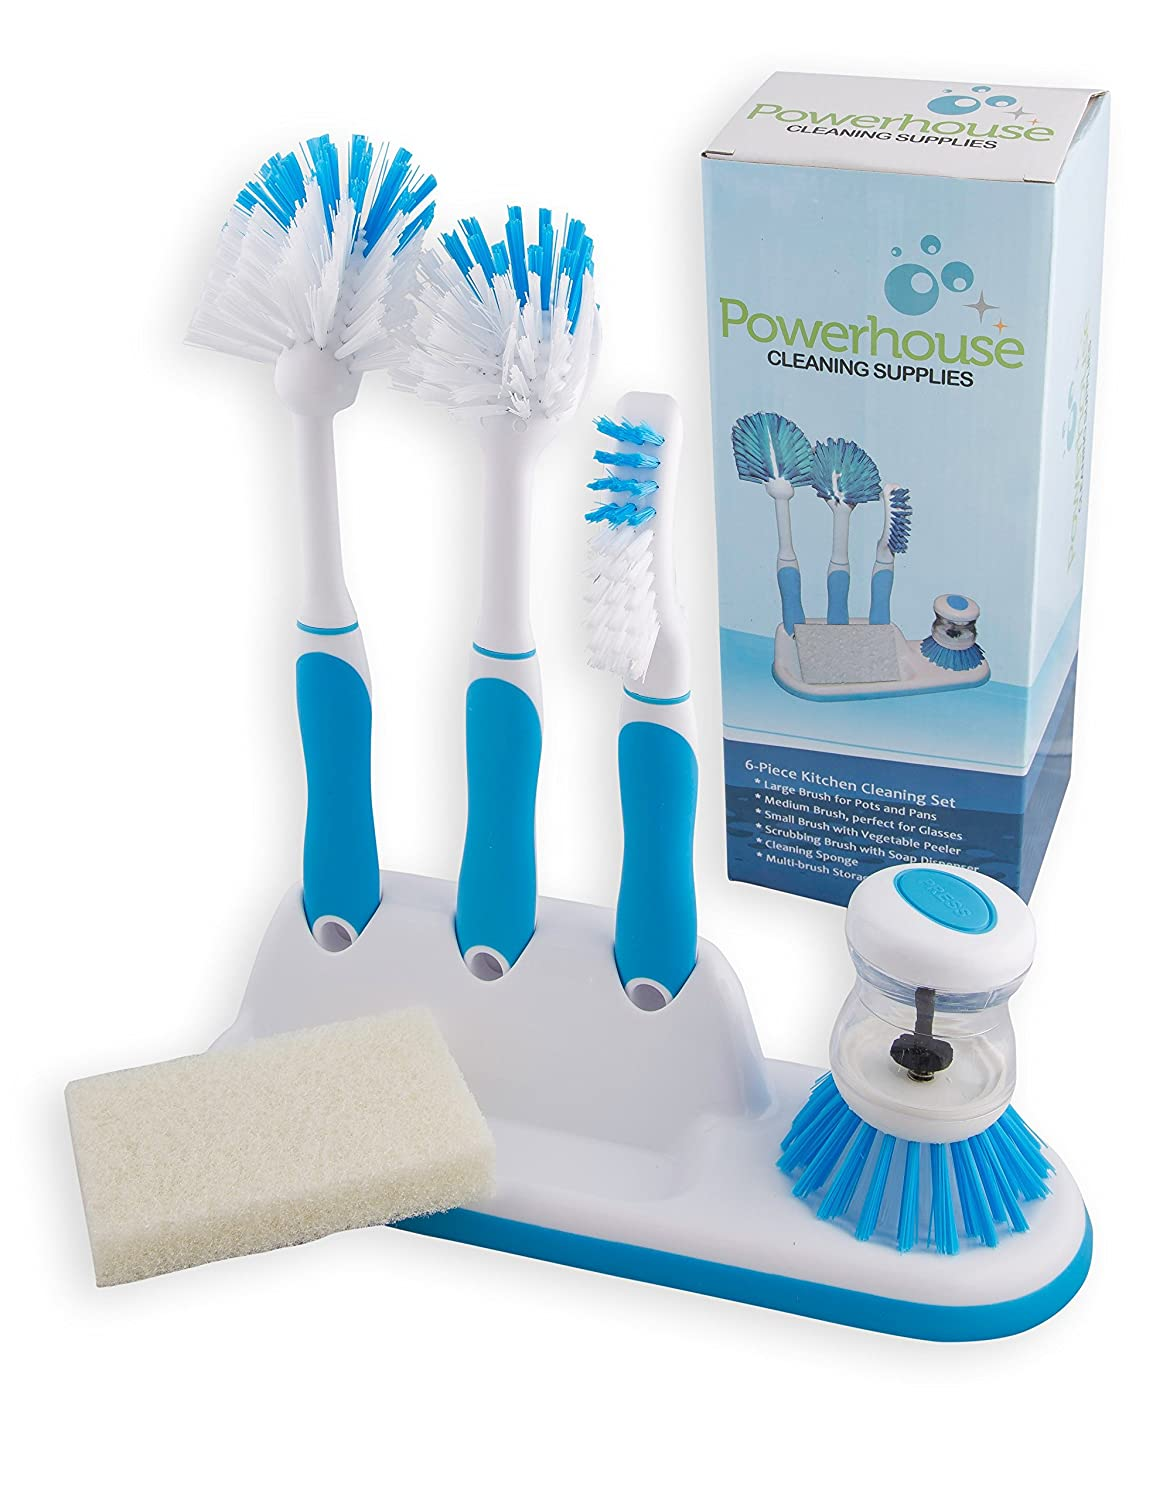 Amazon.com: Kitchen Cleaning 6 Piece Set, Including Sponge and Caddy ...